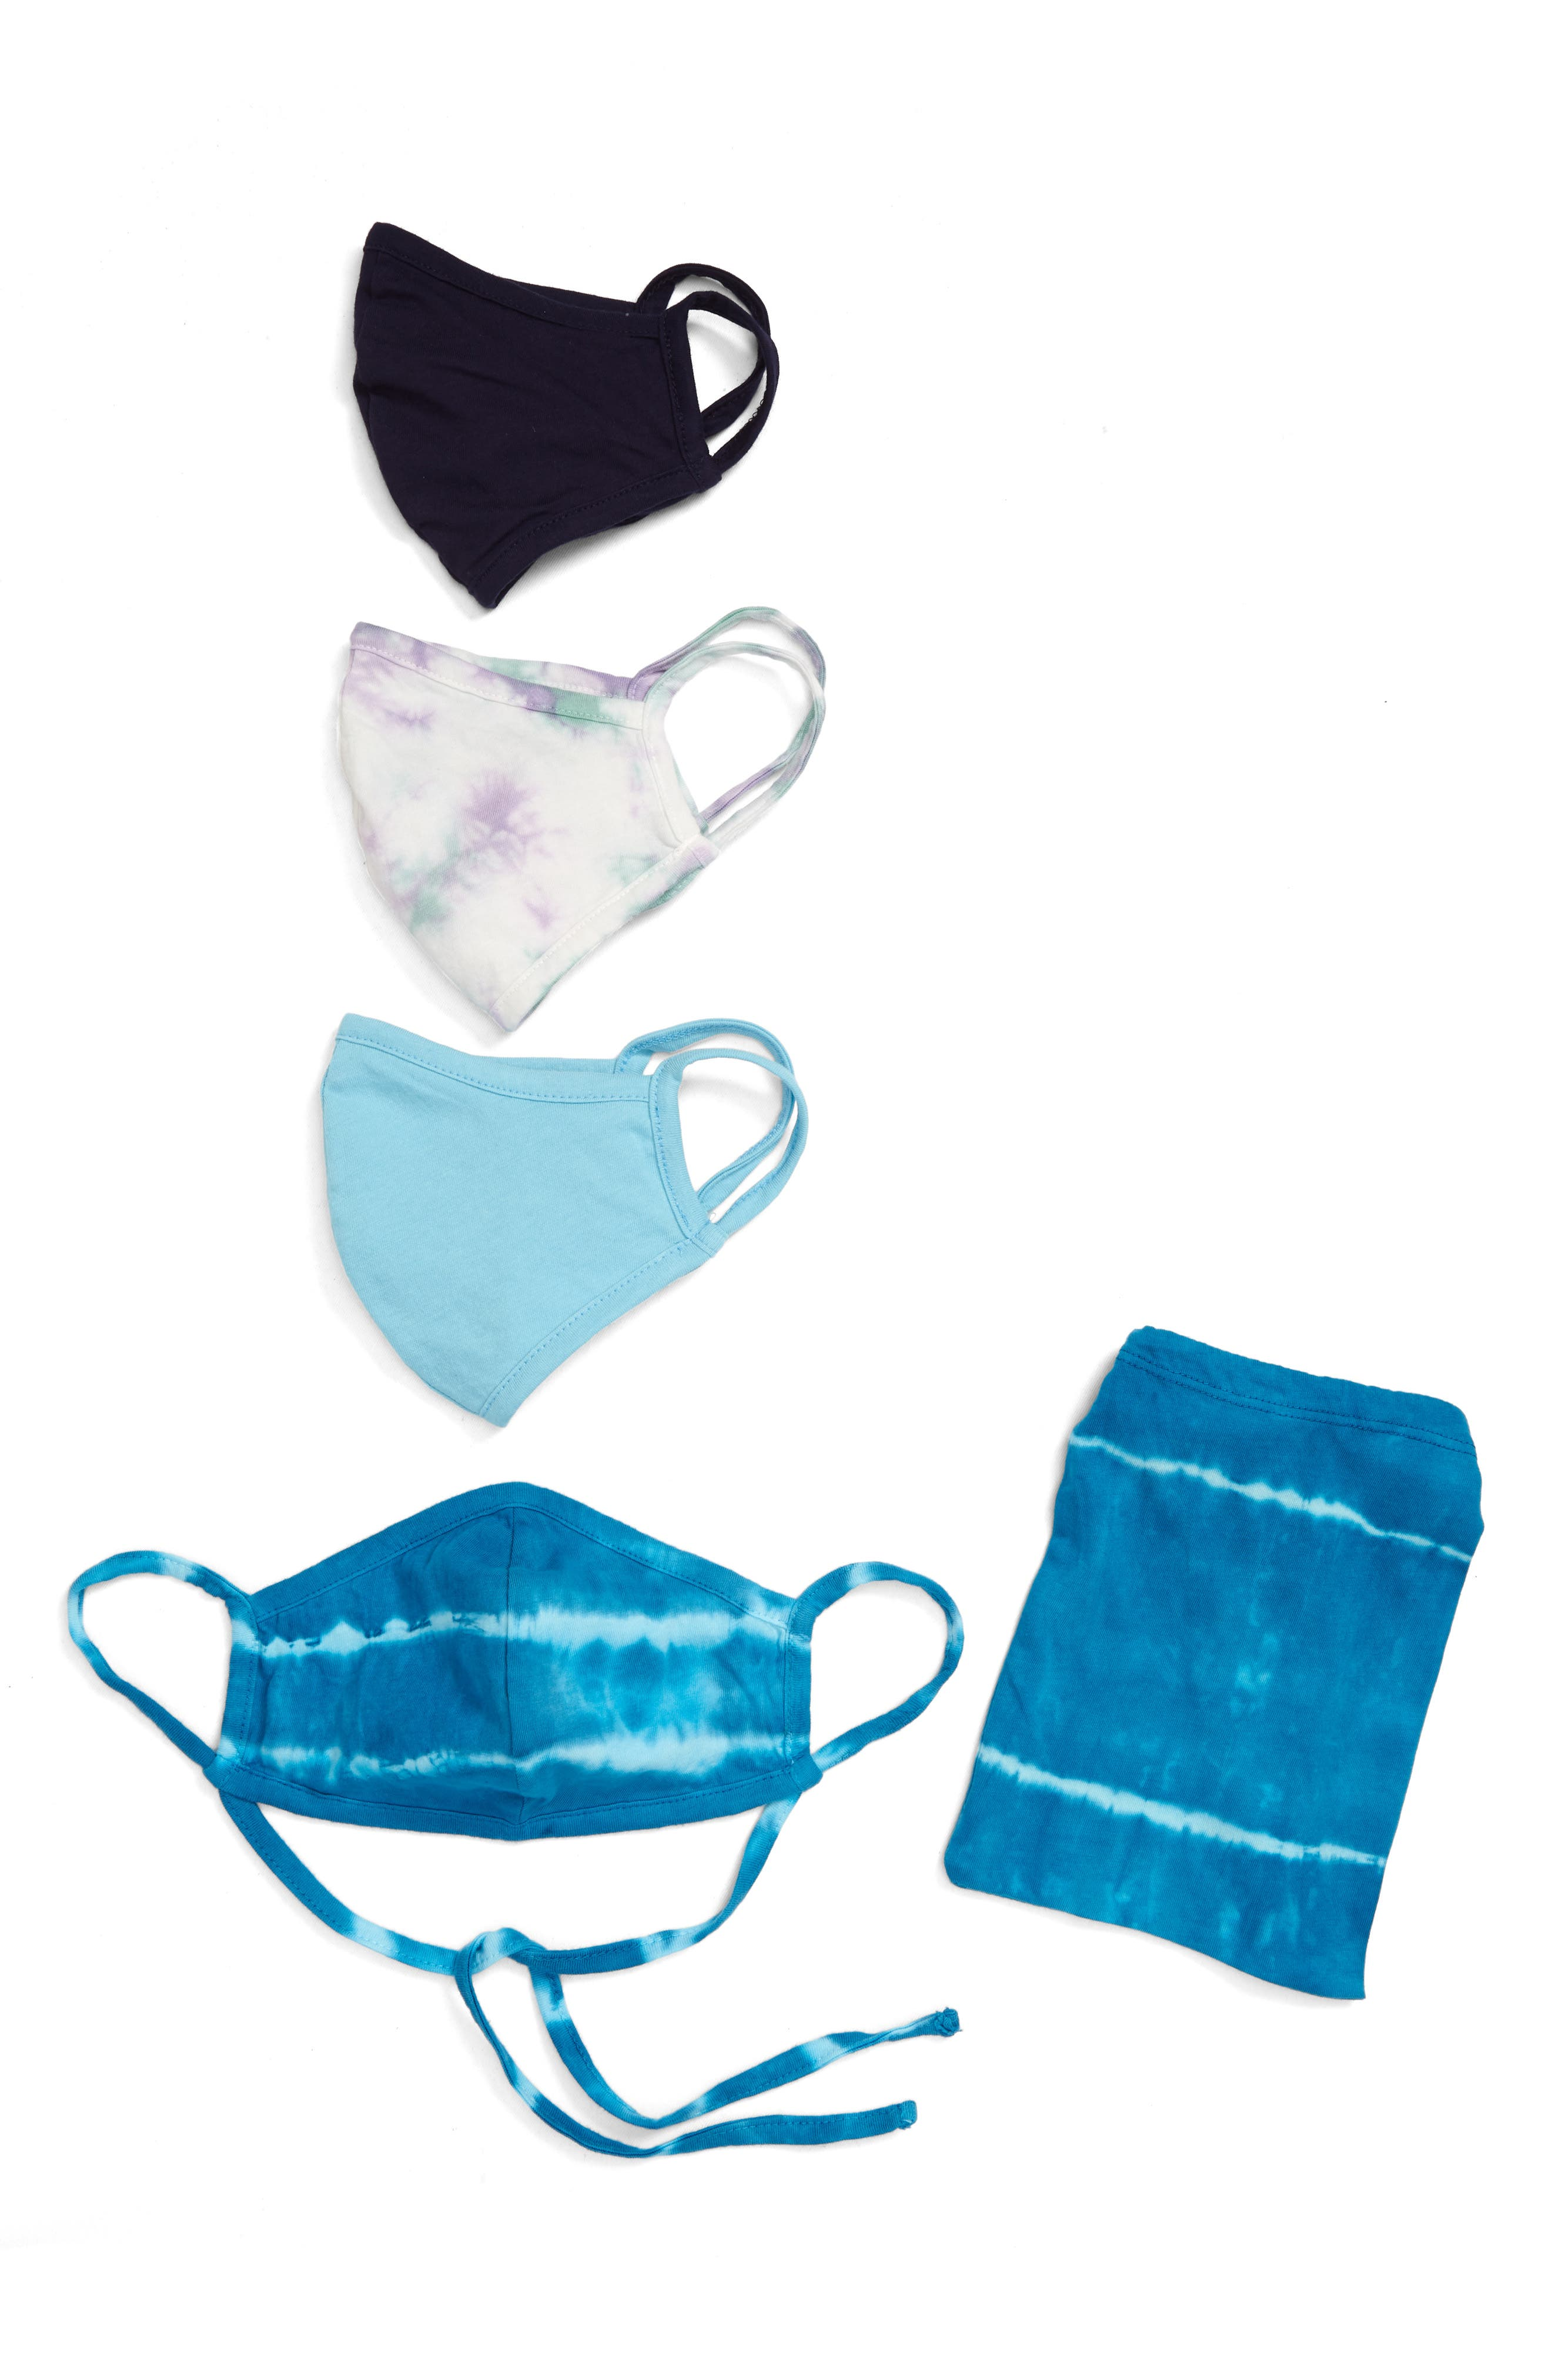 Image of Nordstrom Tie-Dye Adult Face Mask - Pack of 4